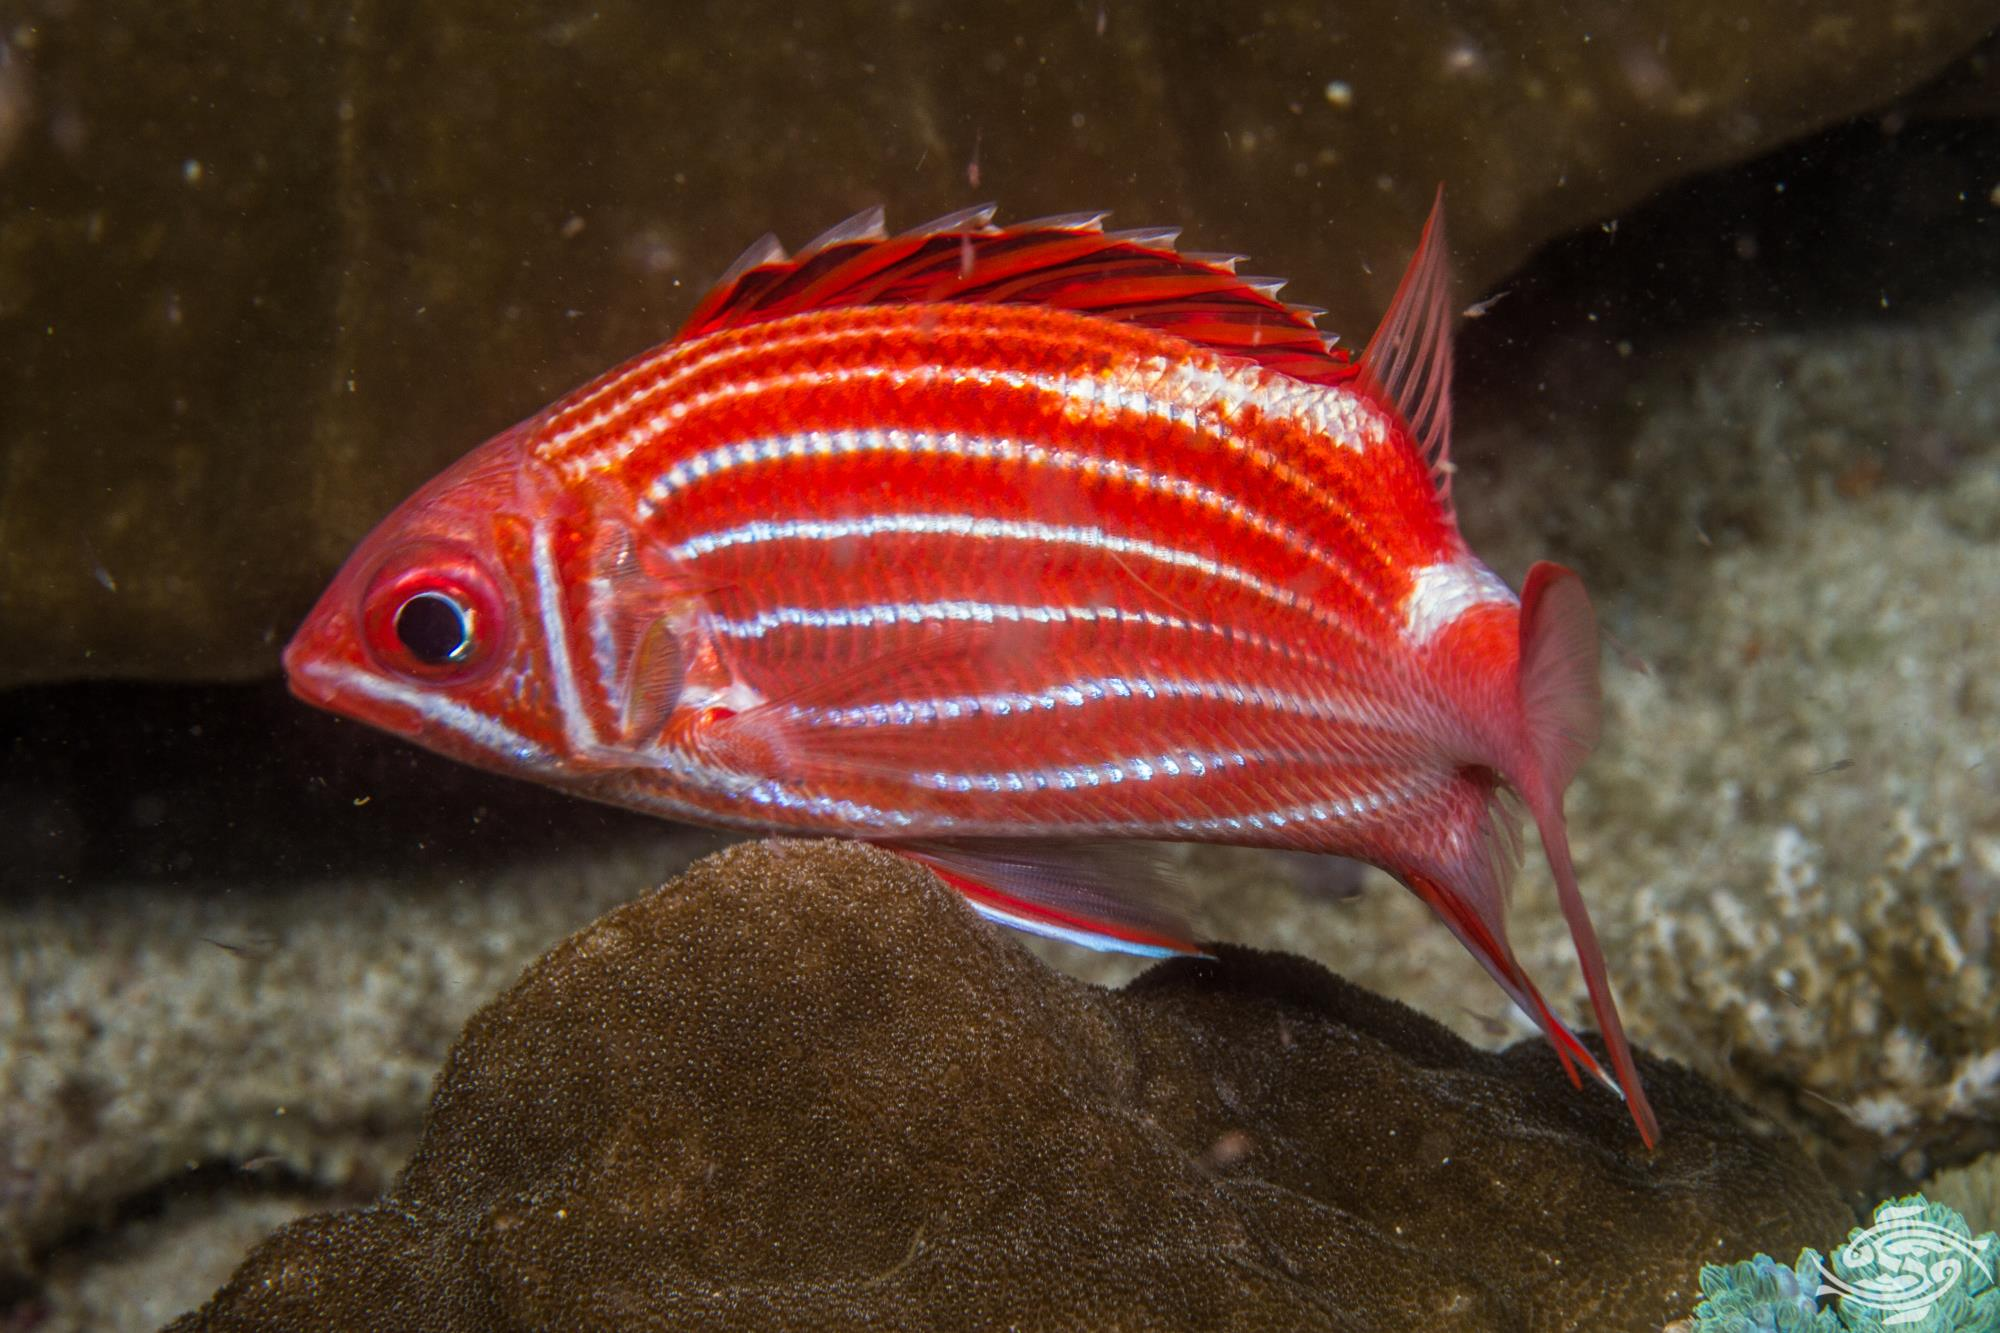 crowned squirrelfish Sargocentron diadema seen hunting at night